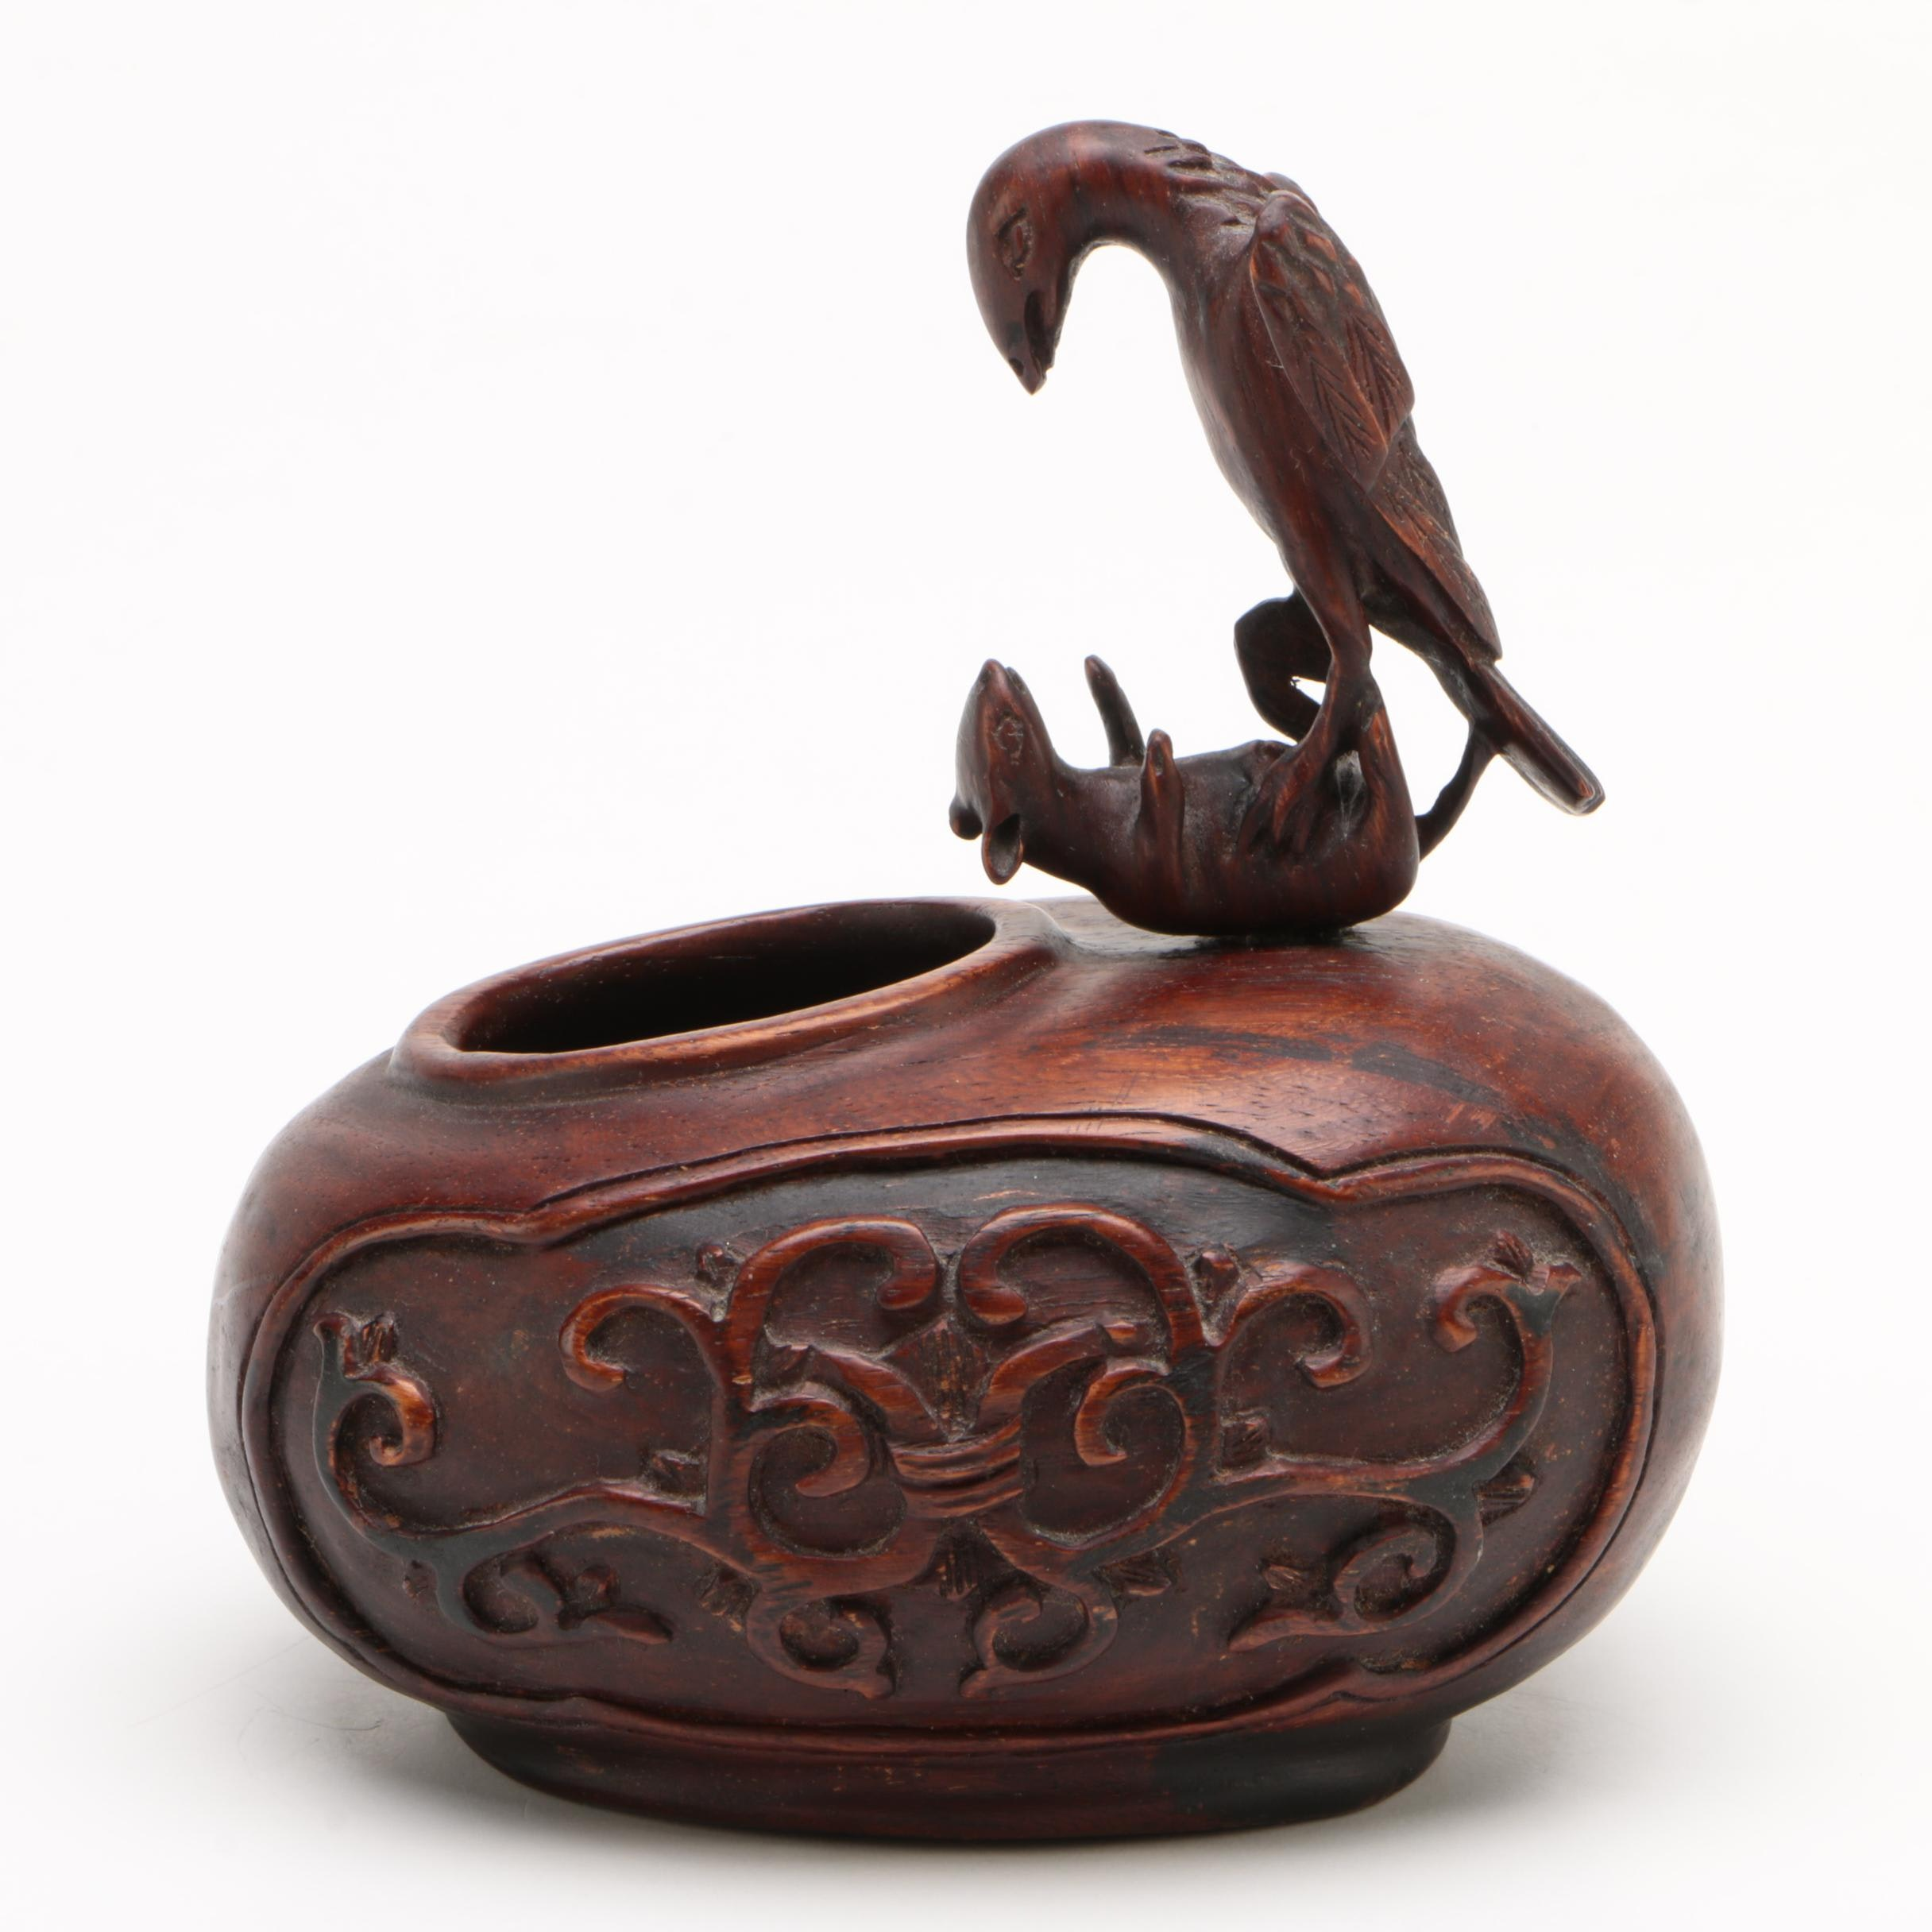 Chinese Carved Wood Figural Inkwell With Raven And Rat, Qing Dynasty